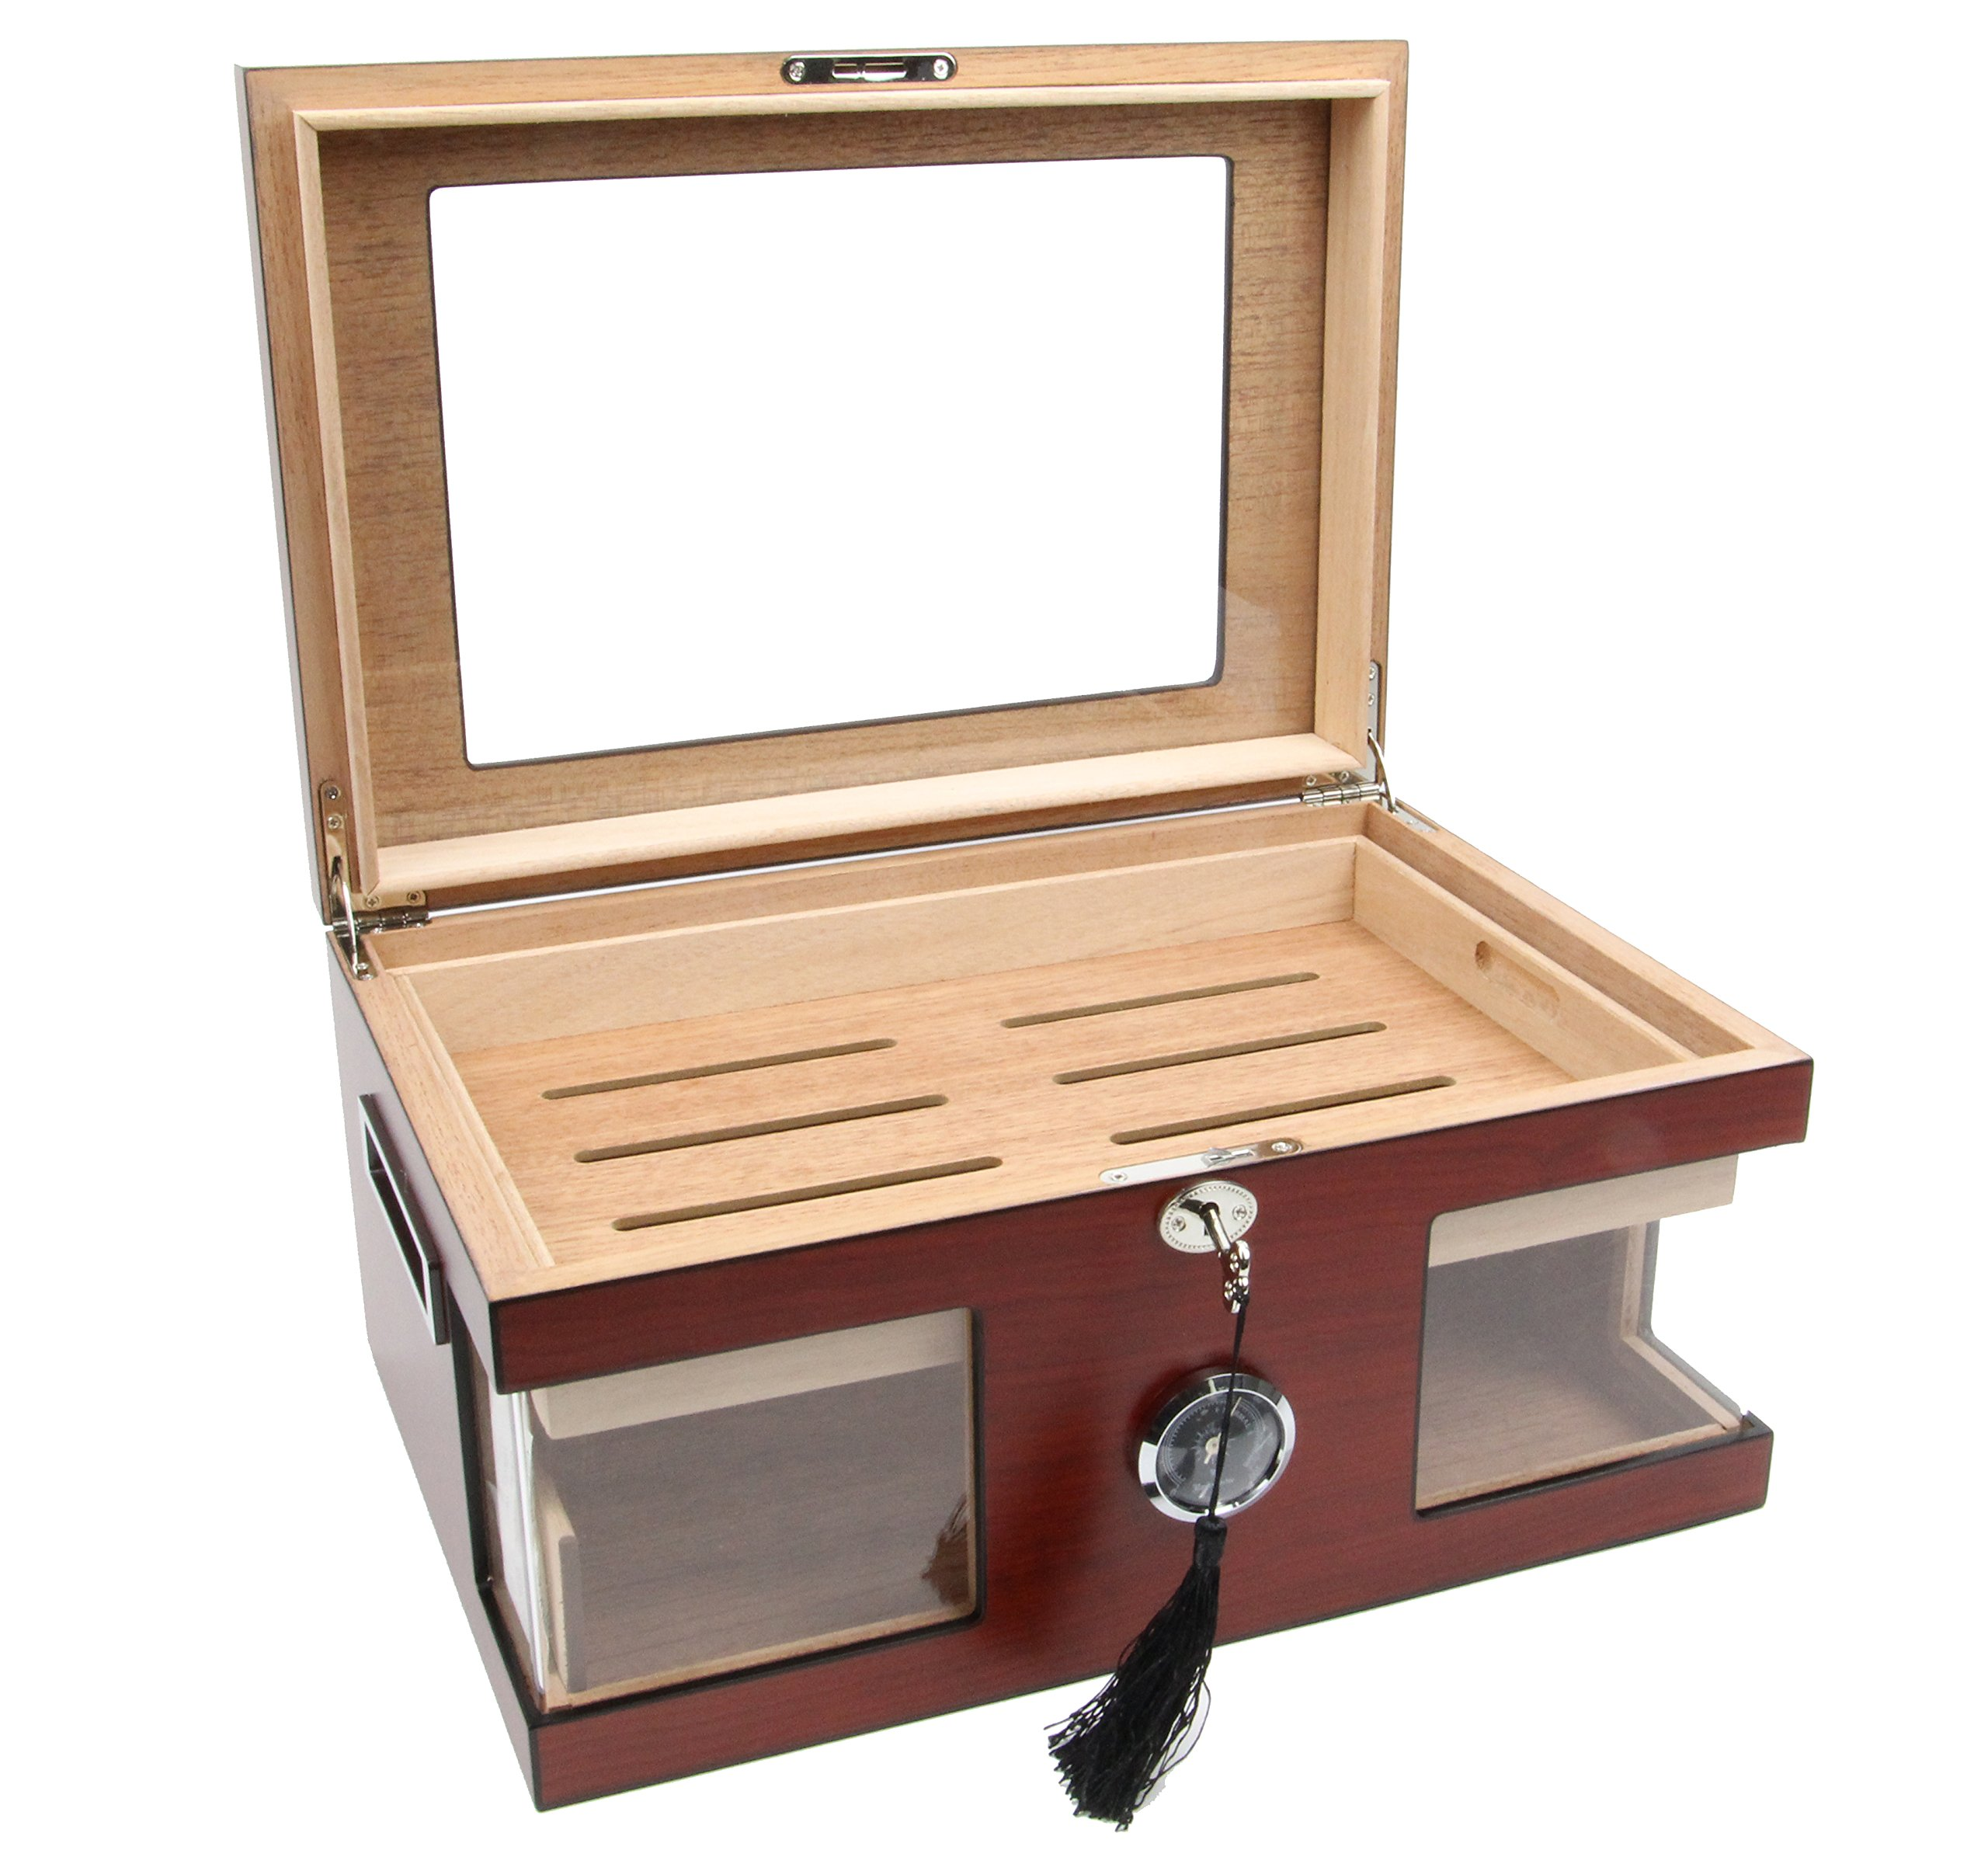 Decorebay SAVOY Executive Boveda Humidor by decore Bay (Image #1)